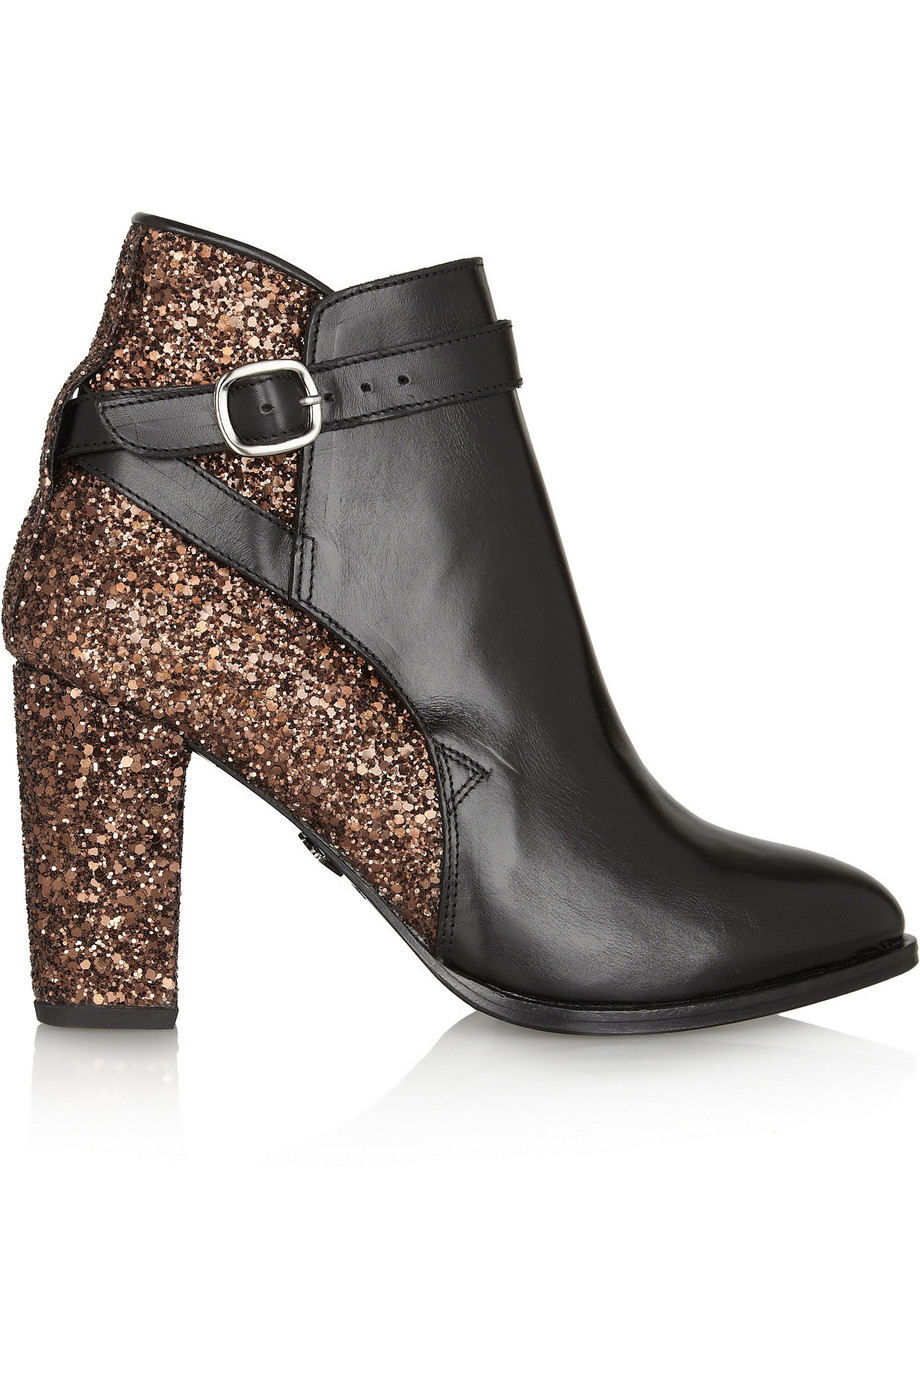 markus lupfer glitter finish leather ankle boots